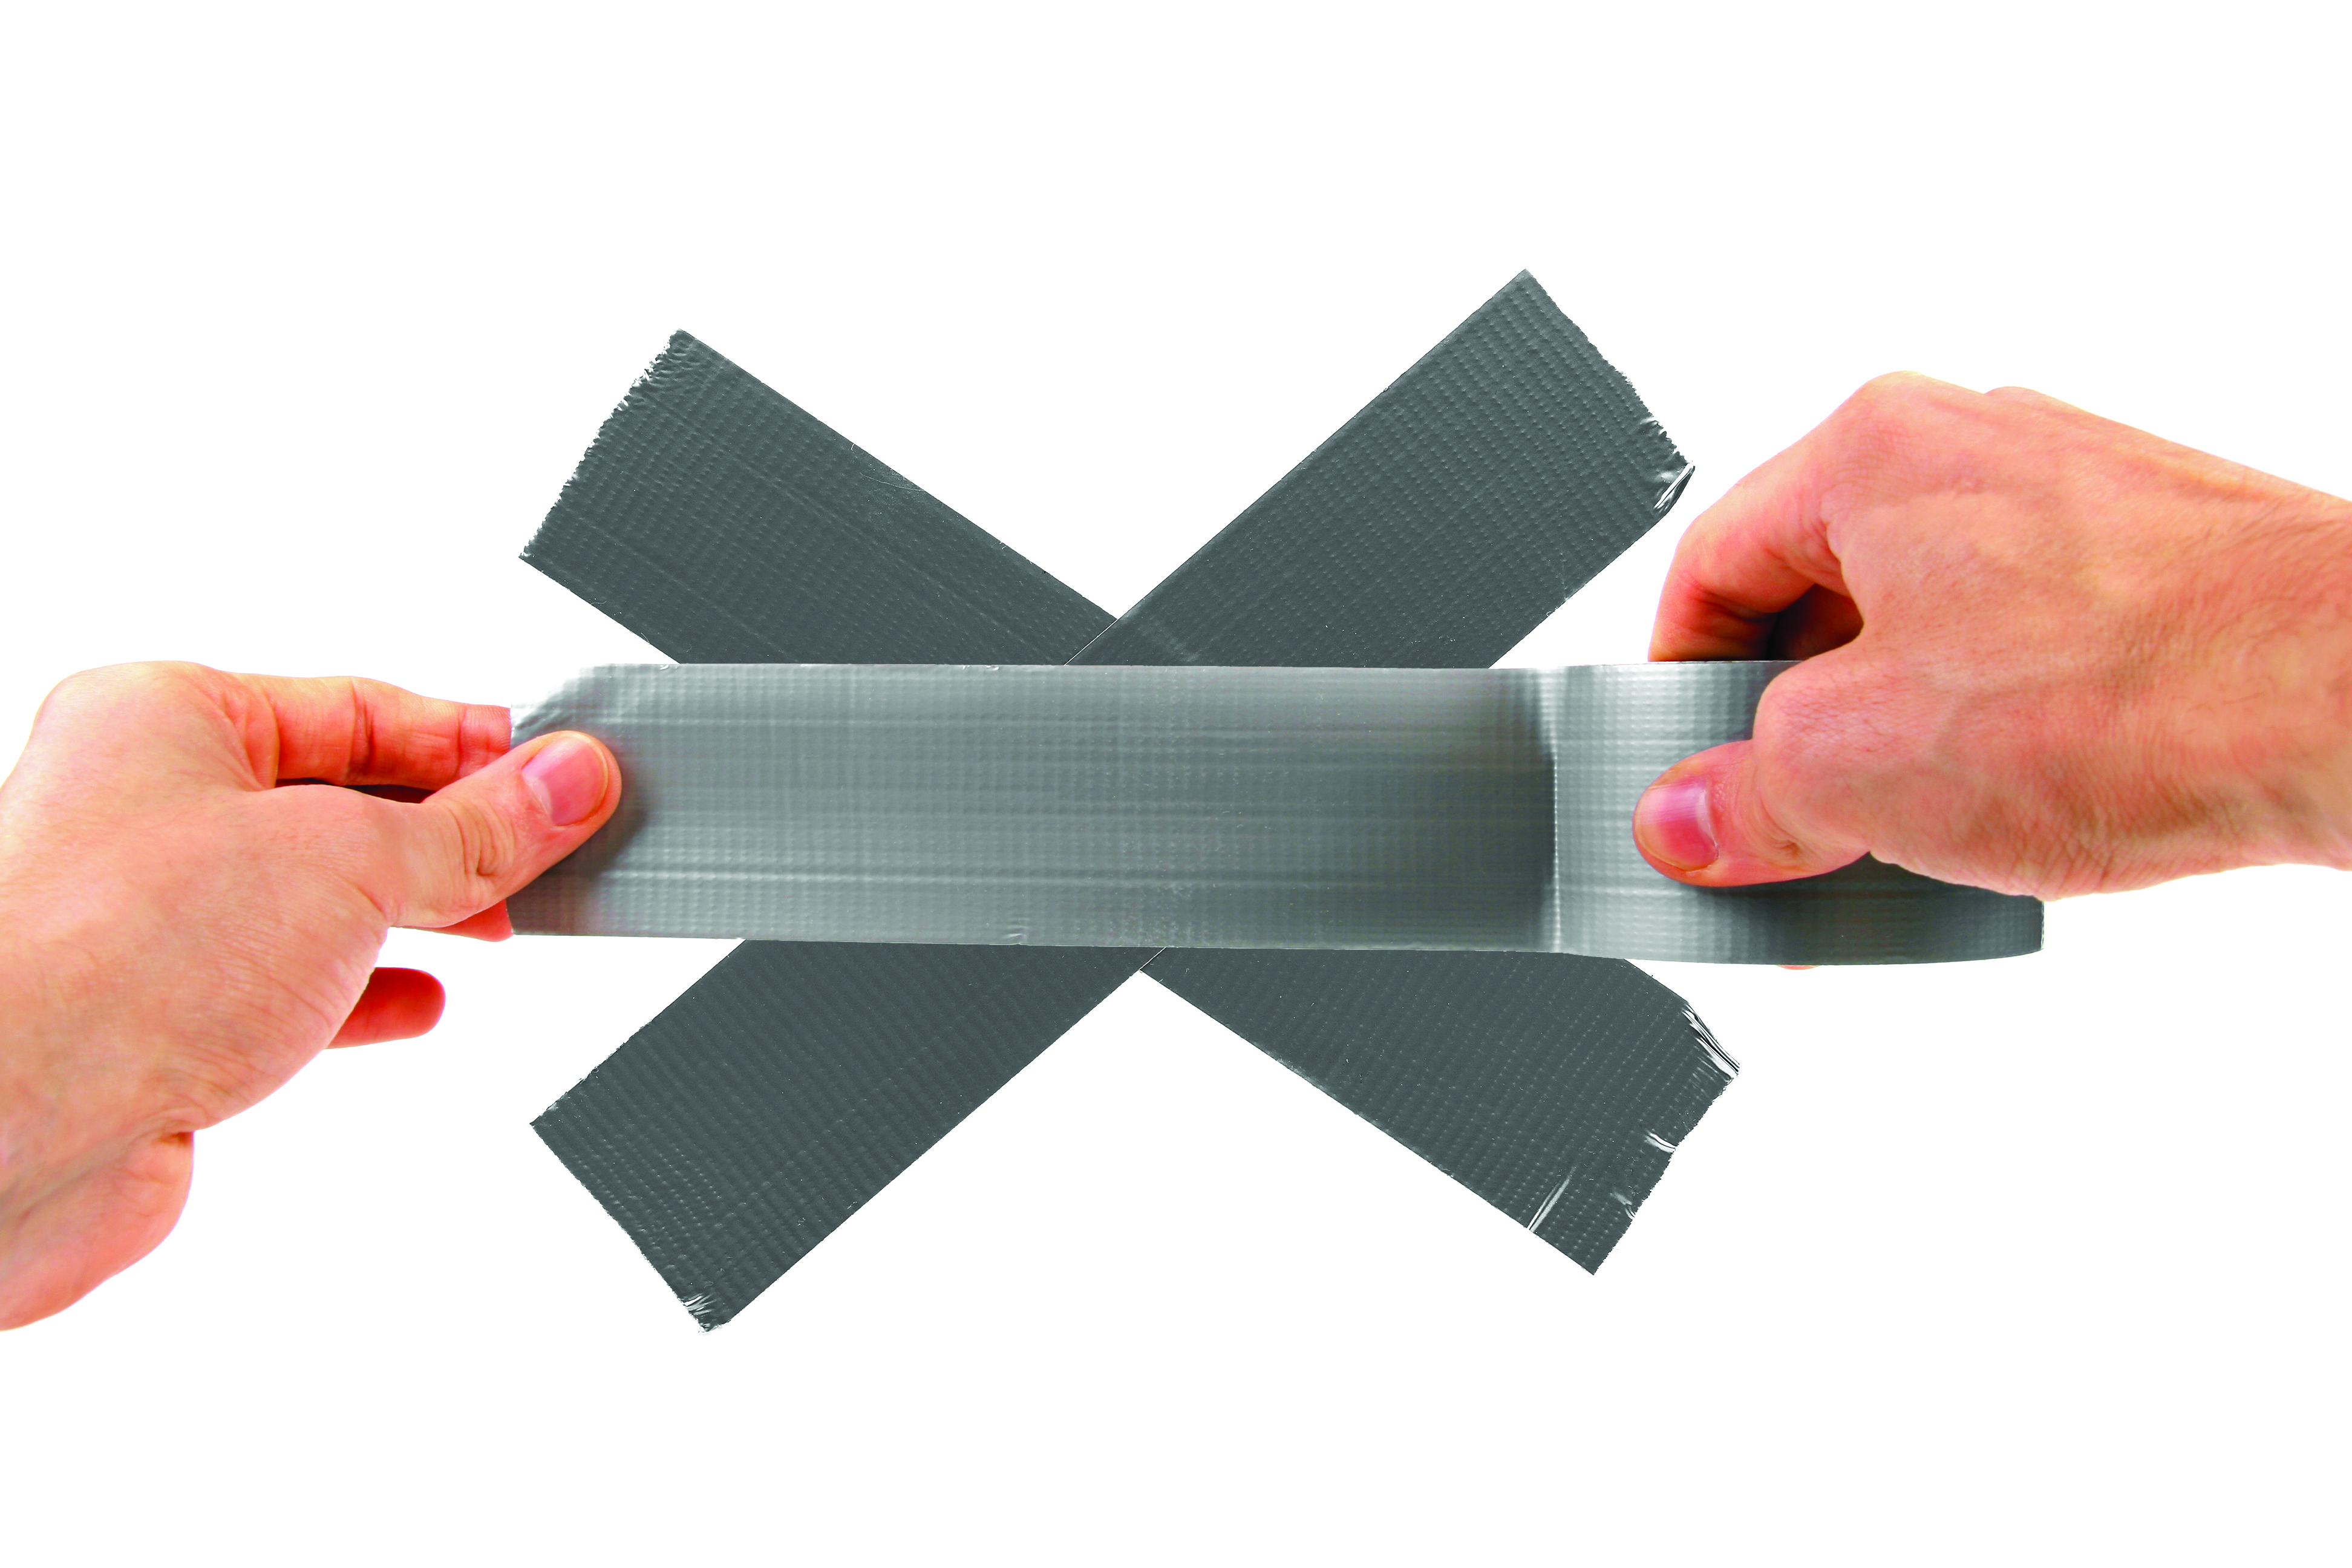 Hands applying duct tape to a white surface